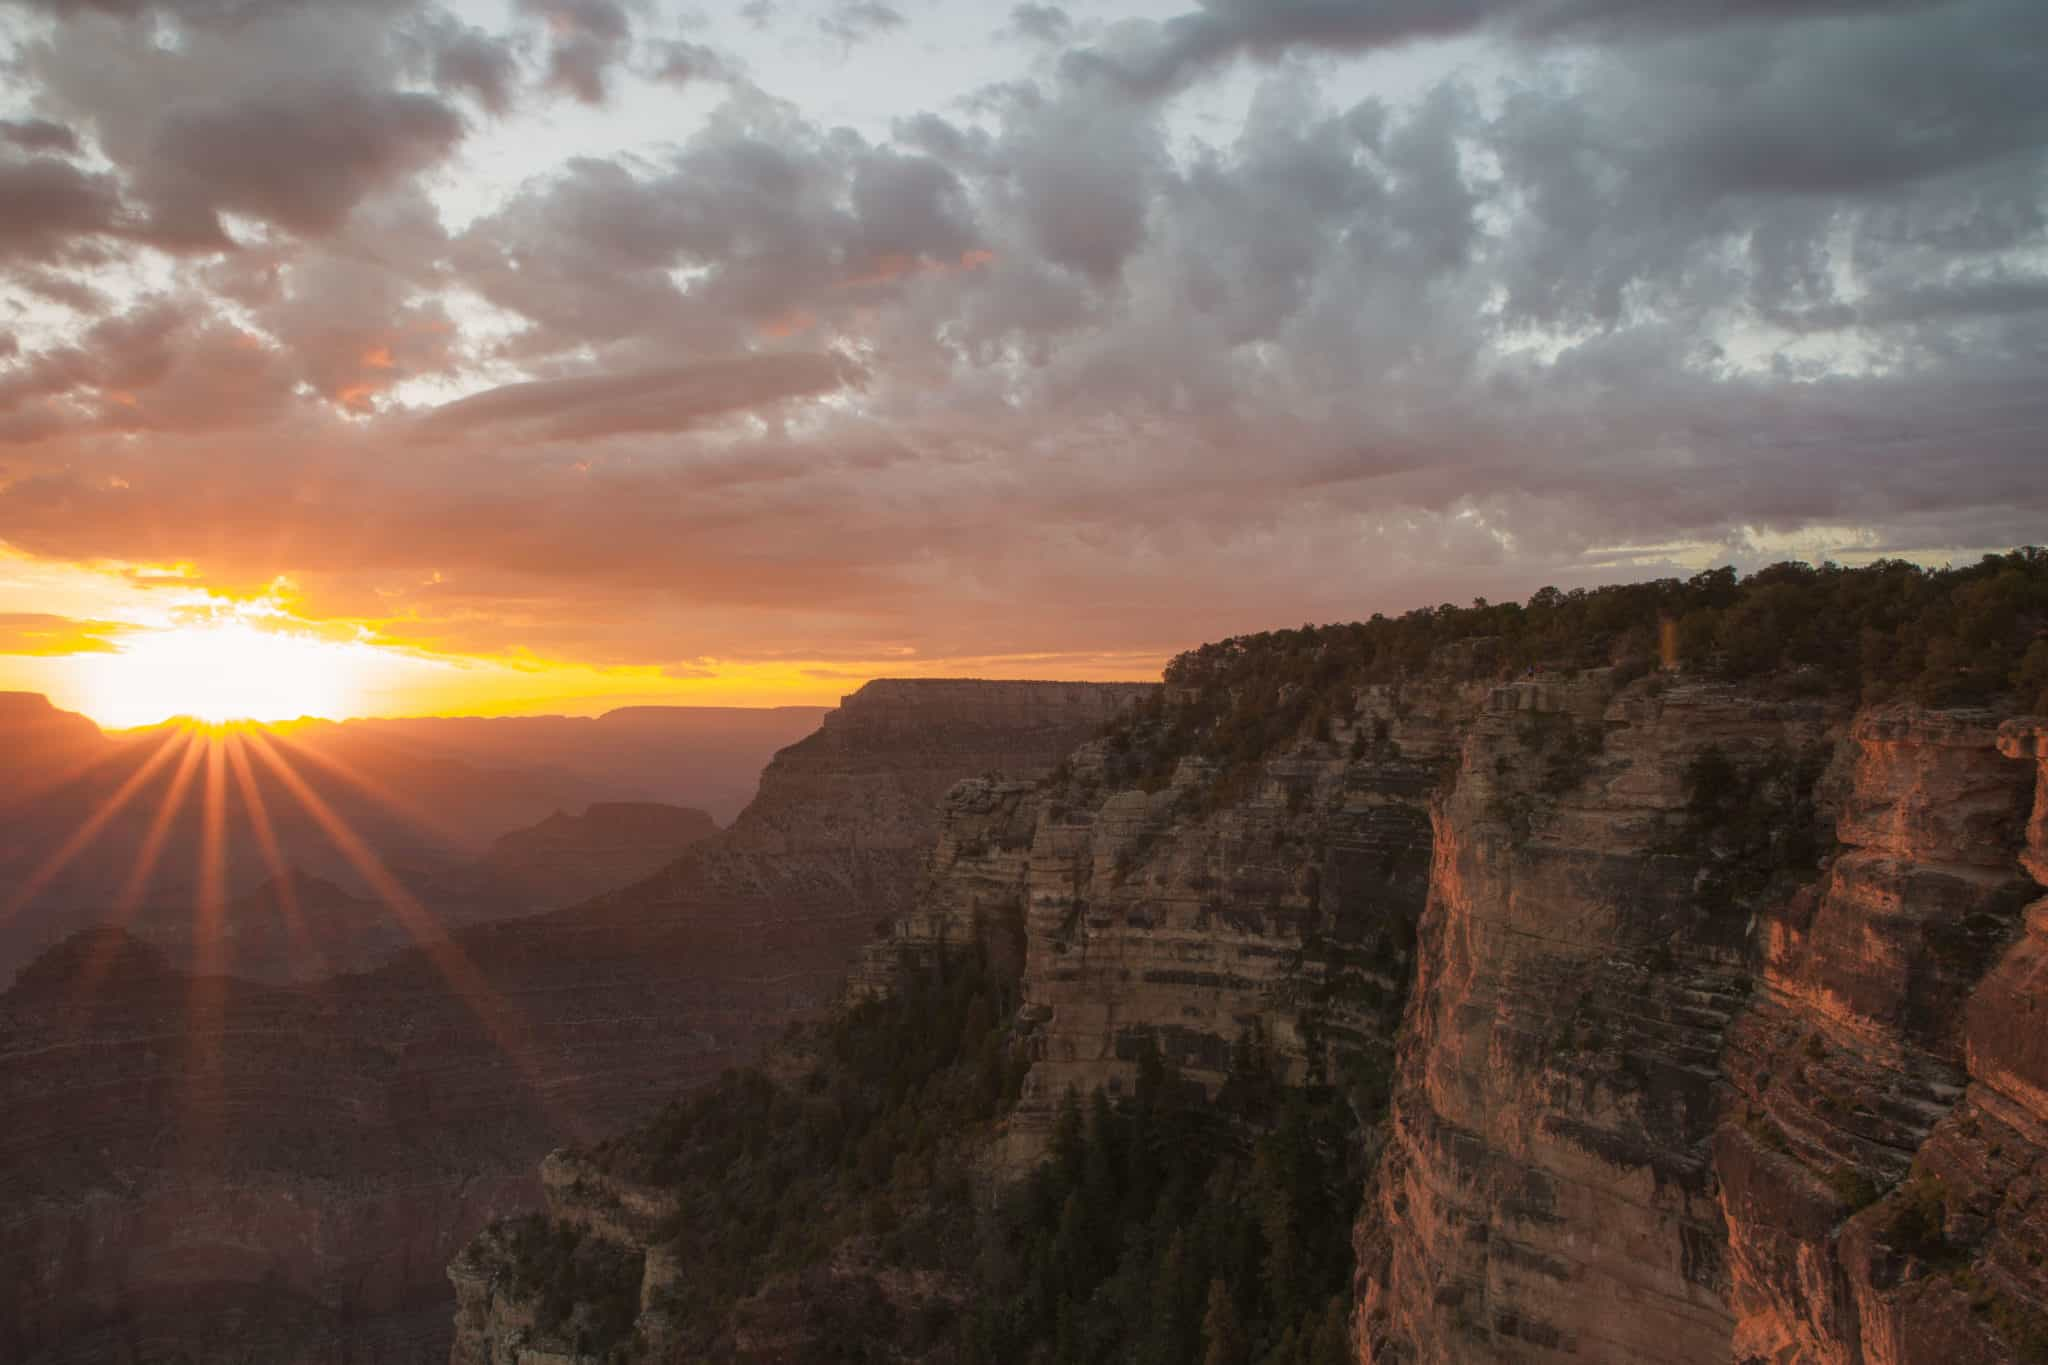 Sunrise over The Grand Canyon, Arizona, USA